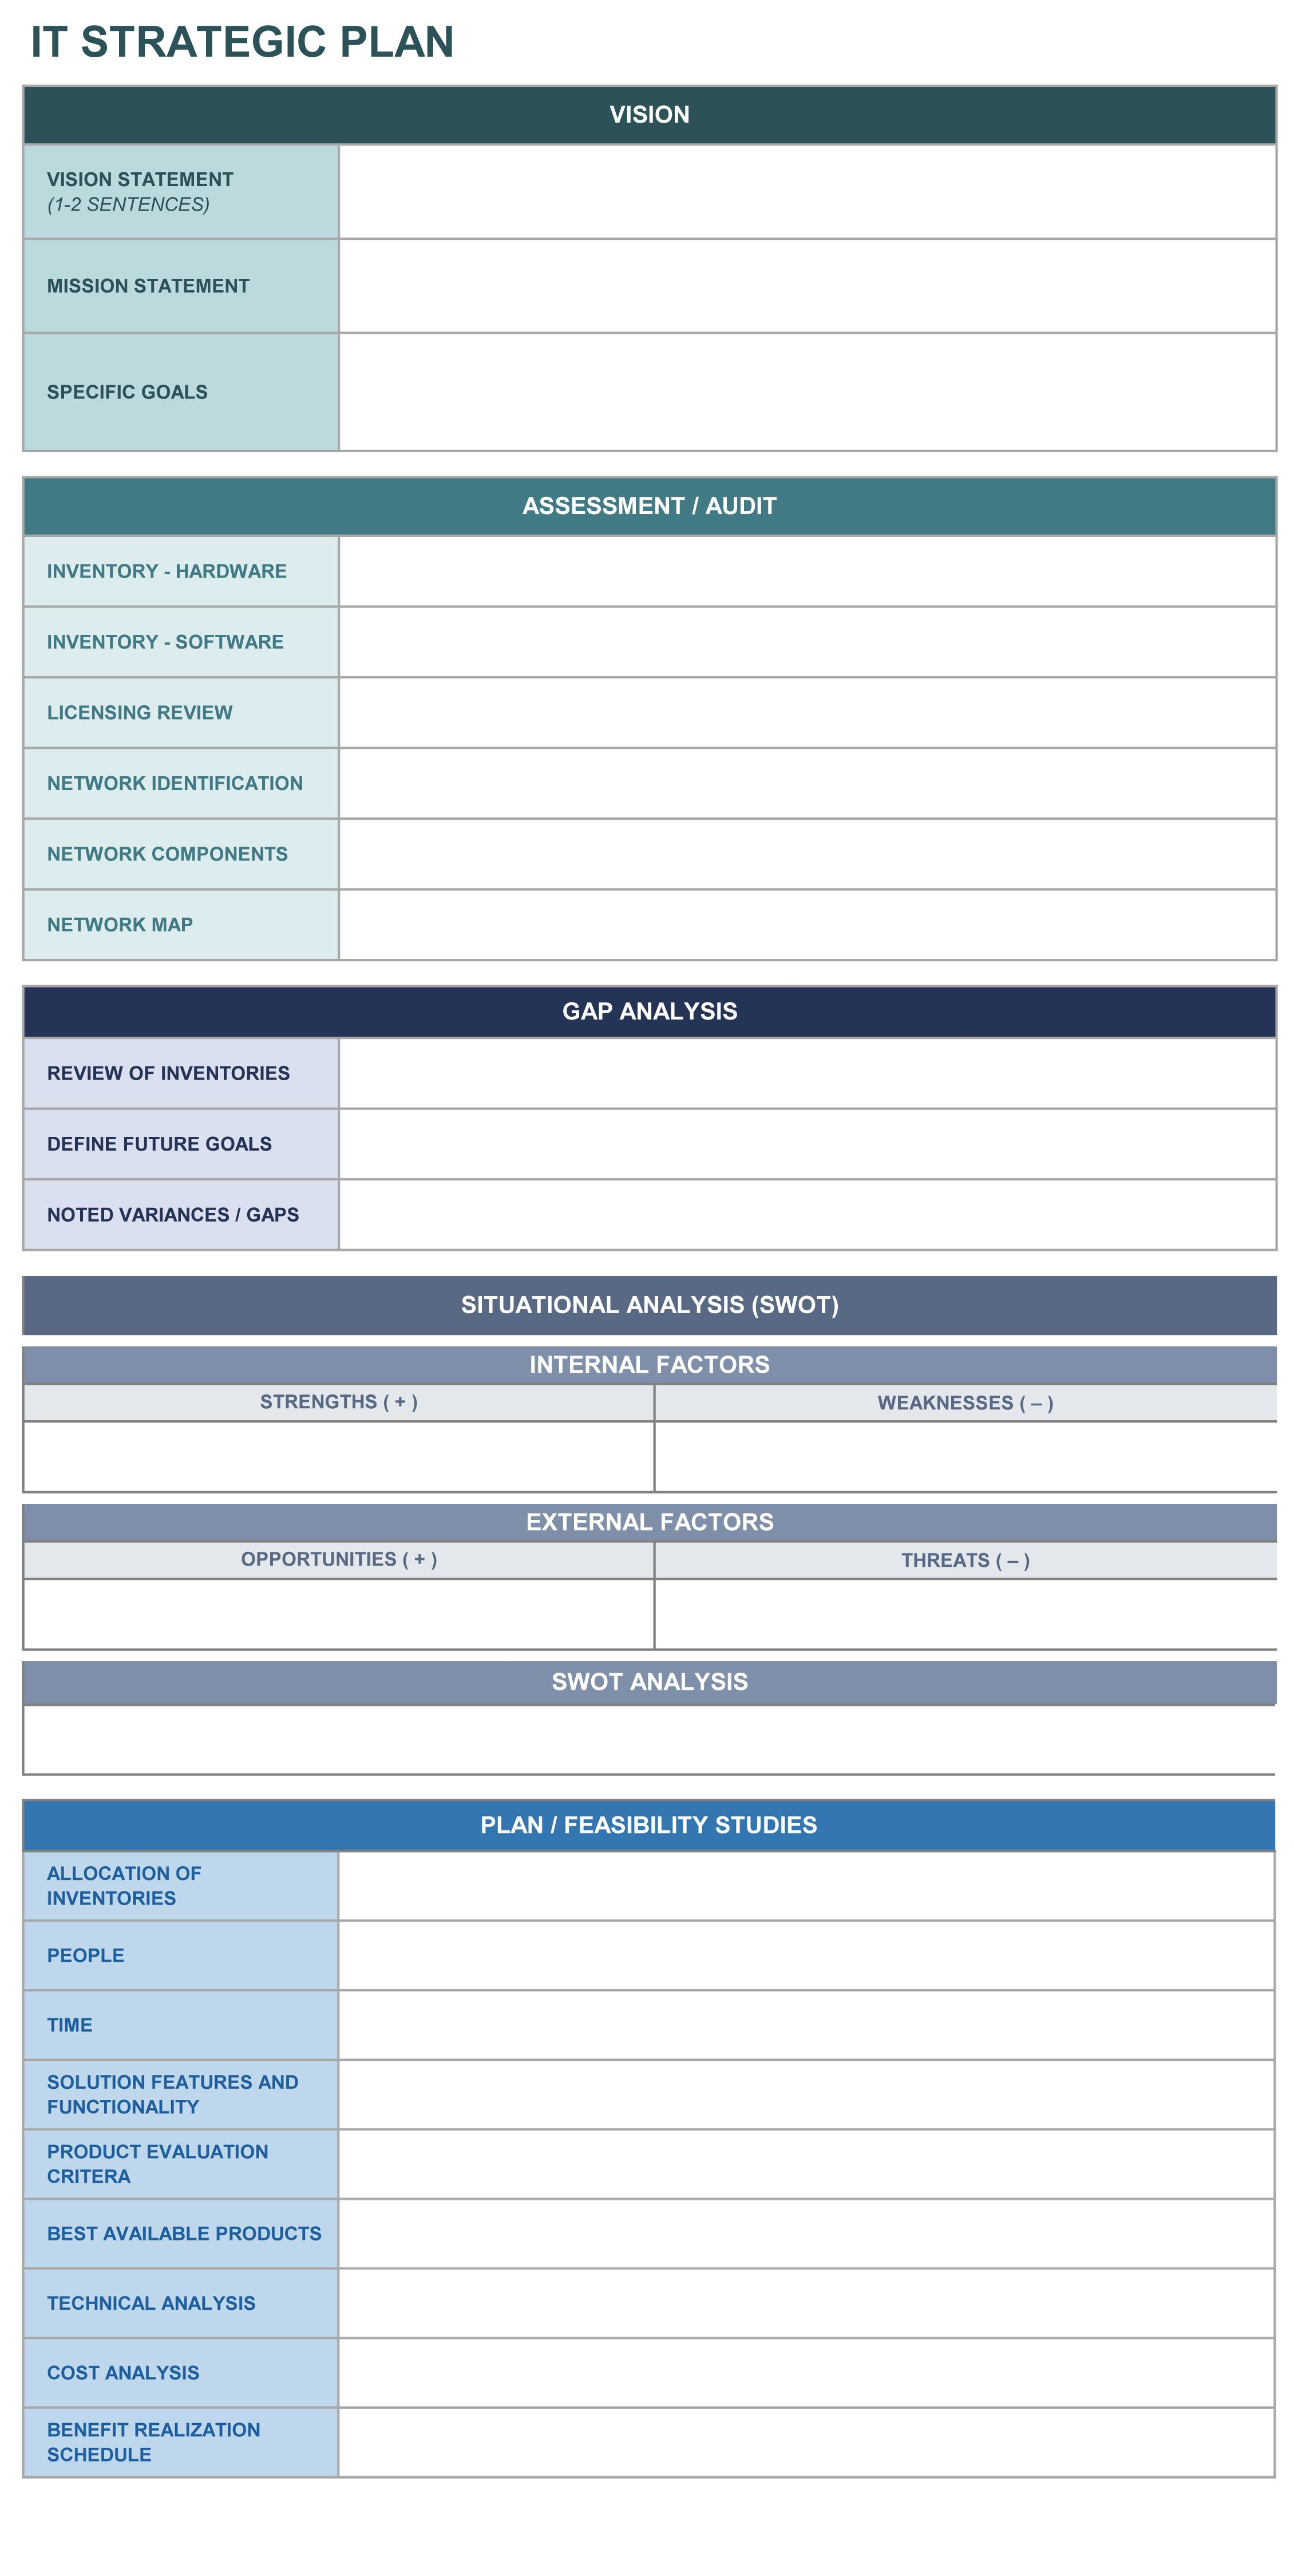 It Strategic Plan Excel Template  Bit Of This  That Interesting